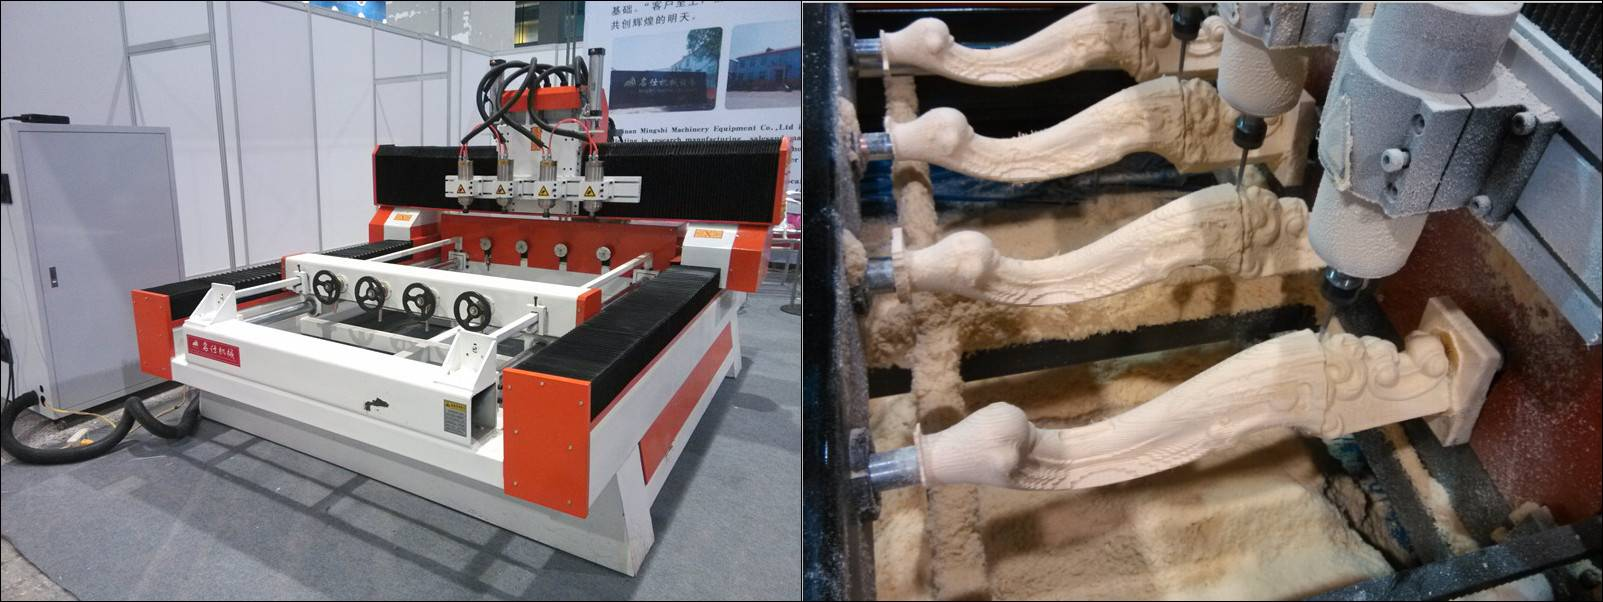 Professional cnc milling machine 4 axis with multi head